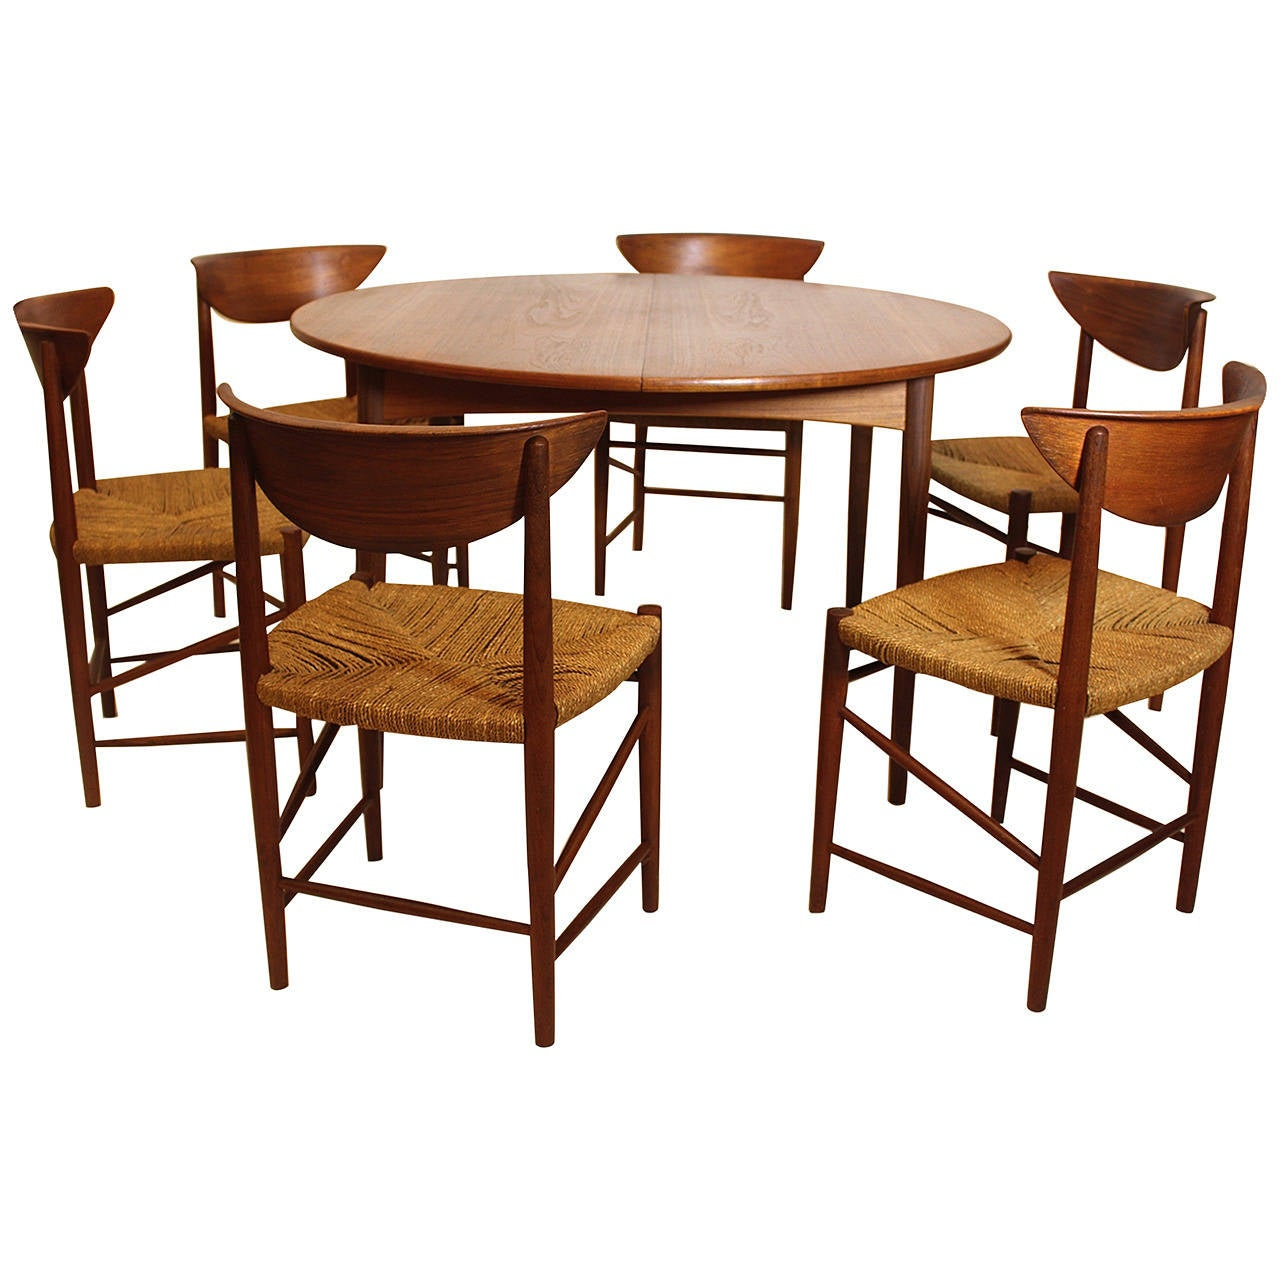 danish modern dining room suite by peter hvidt denmark circa 1956 for